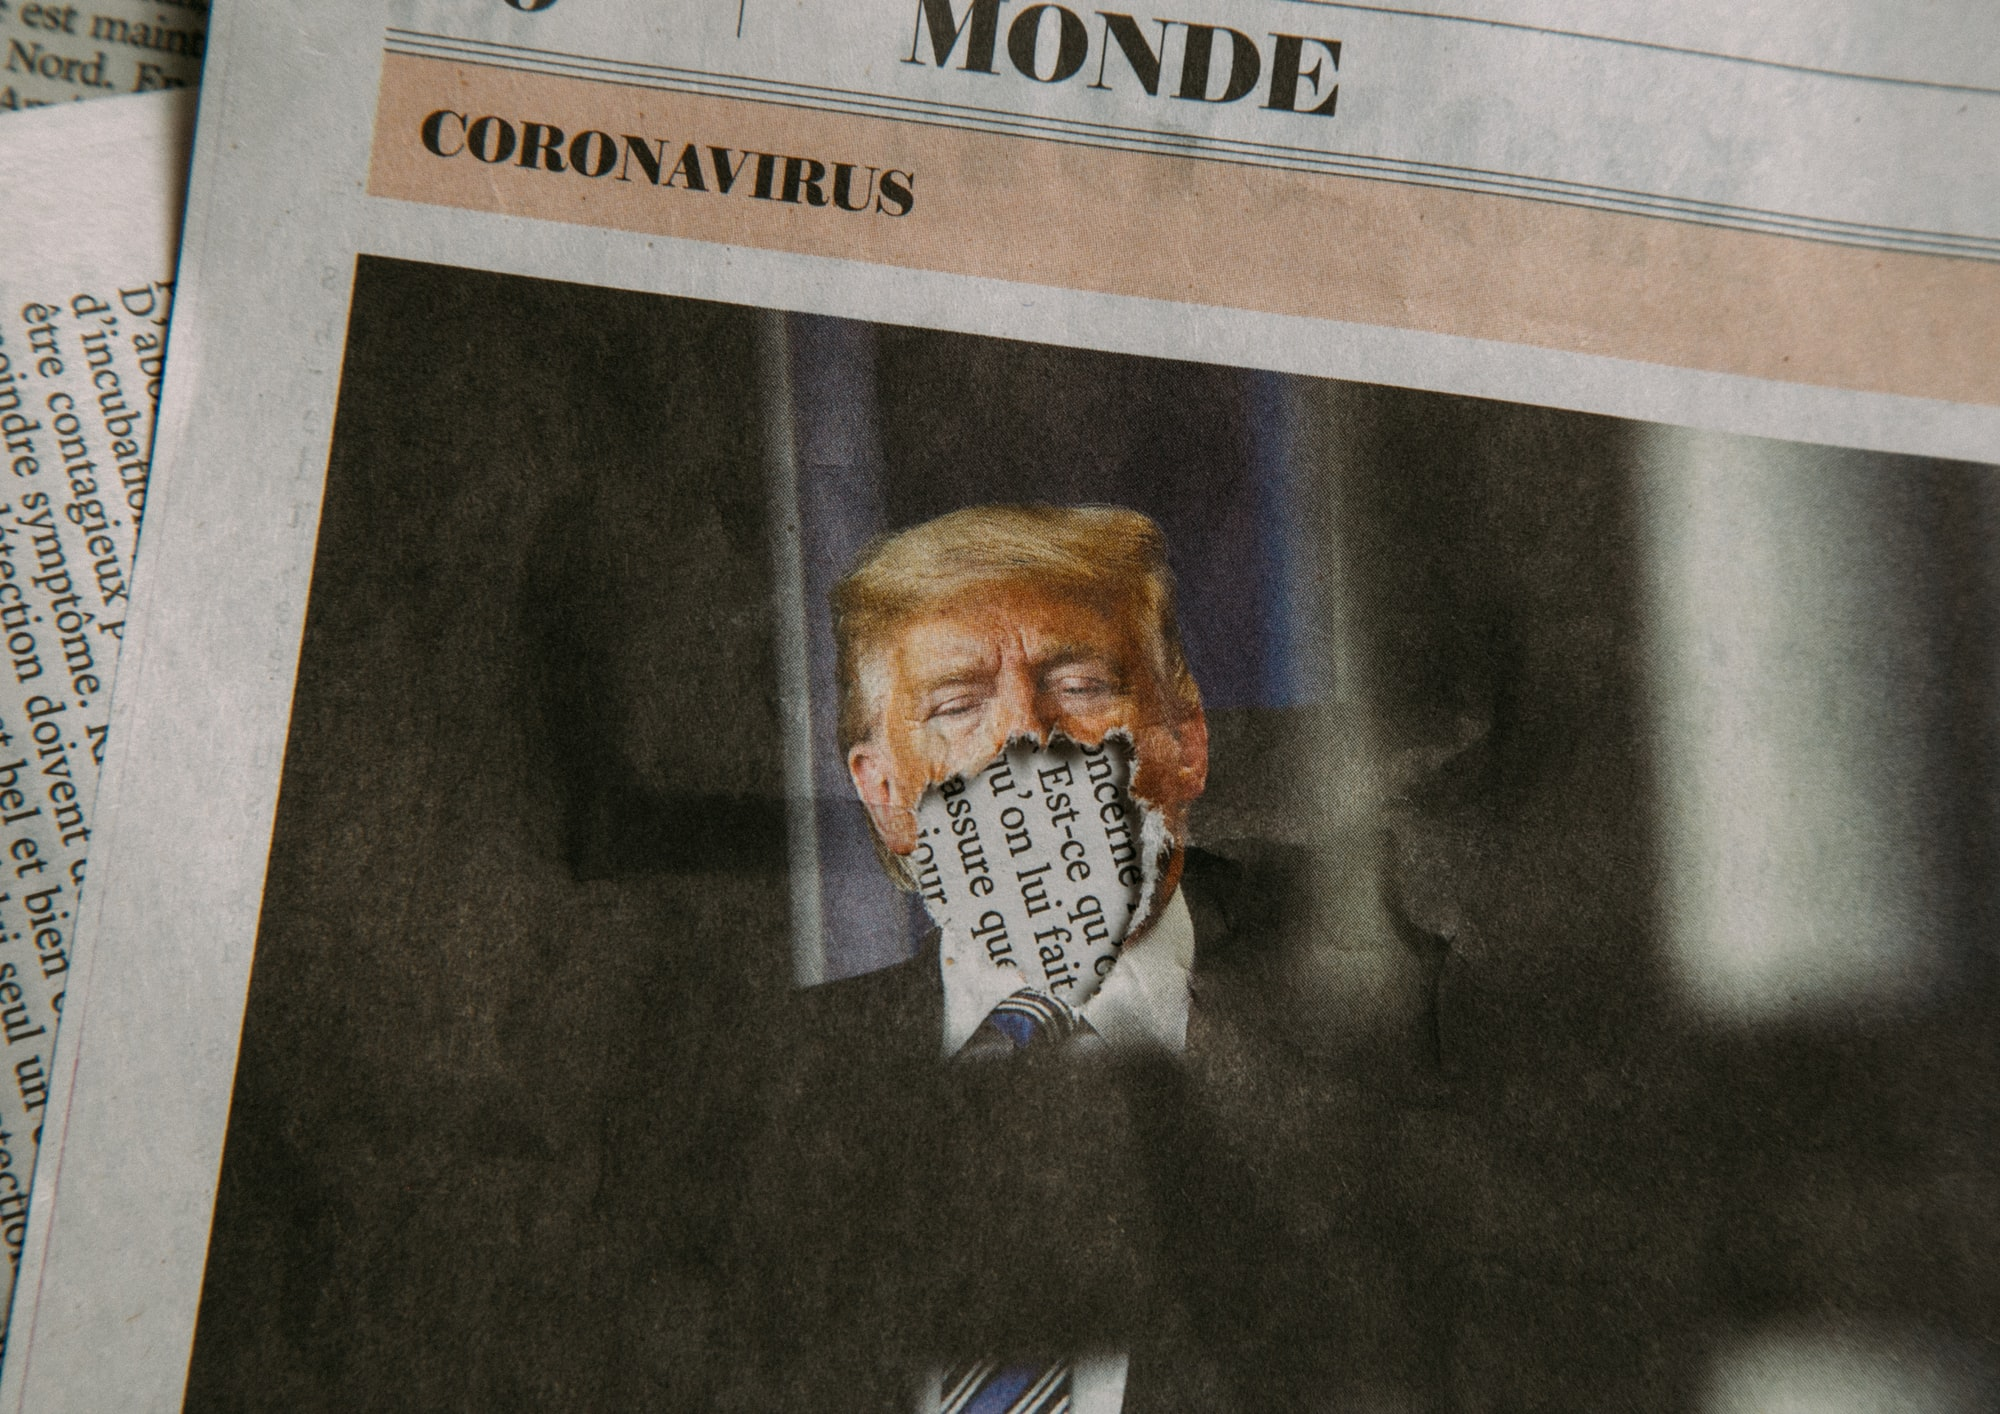 Trump and Coronavirus (Newspaper)